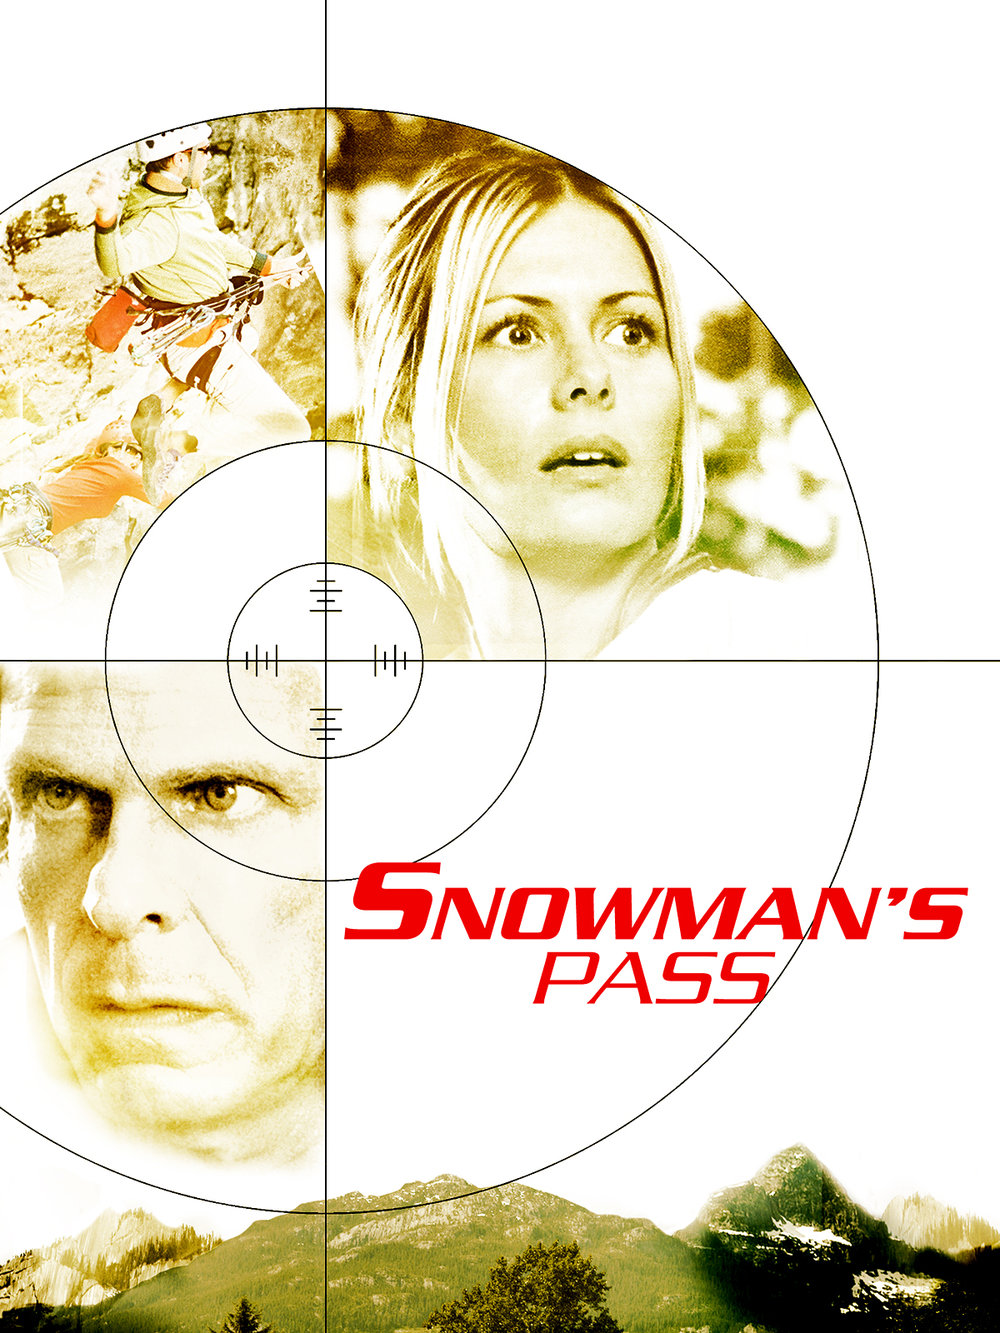 Here-SnowmansPass-Full-Image-en-US.jpg